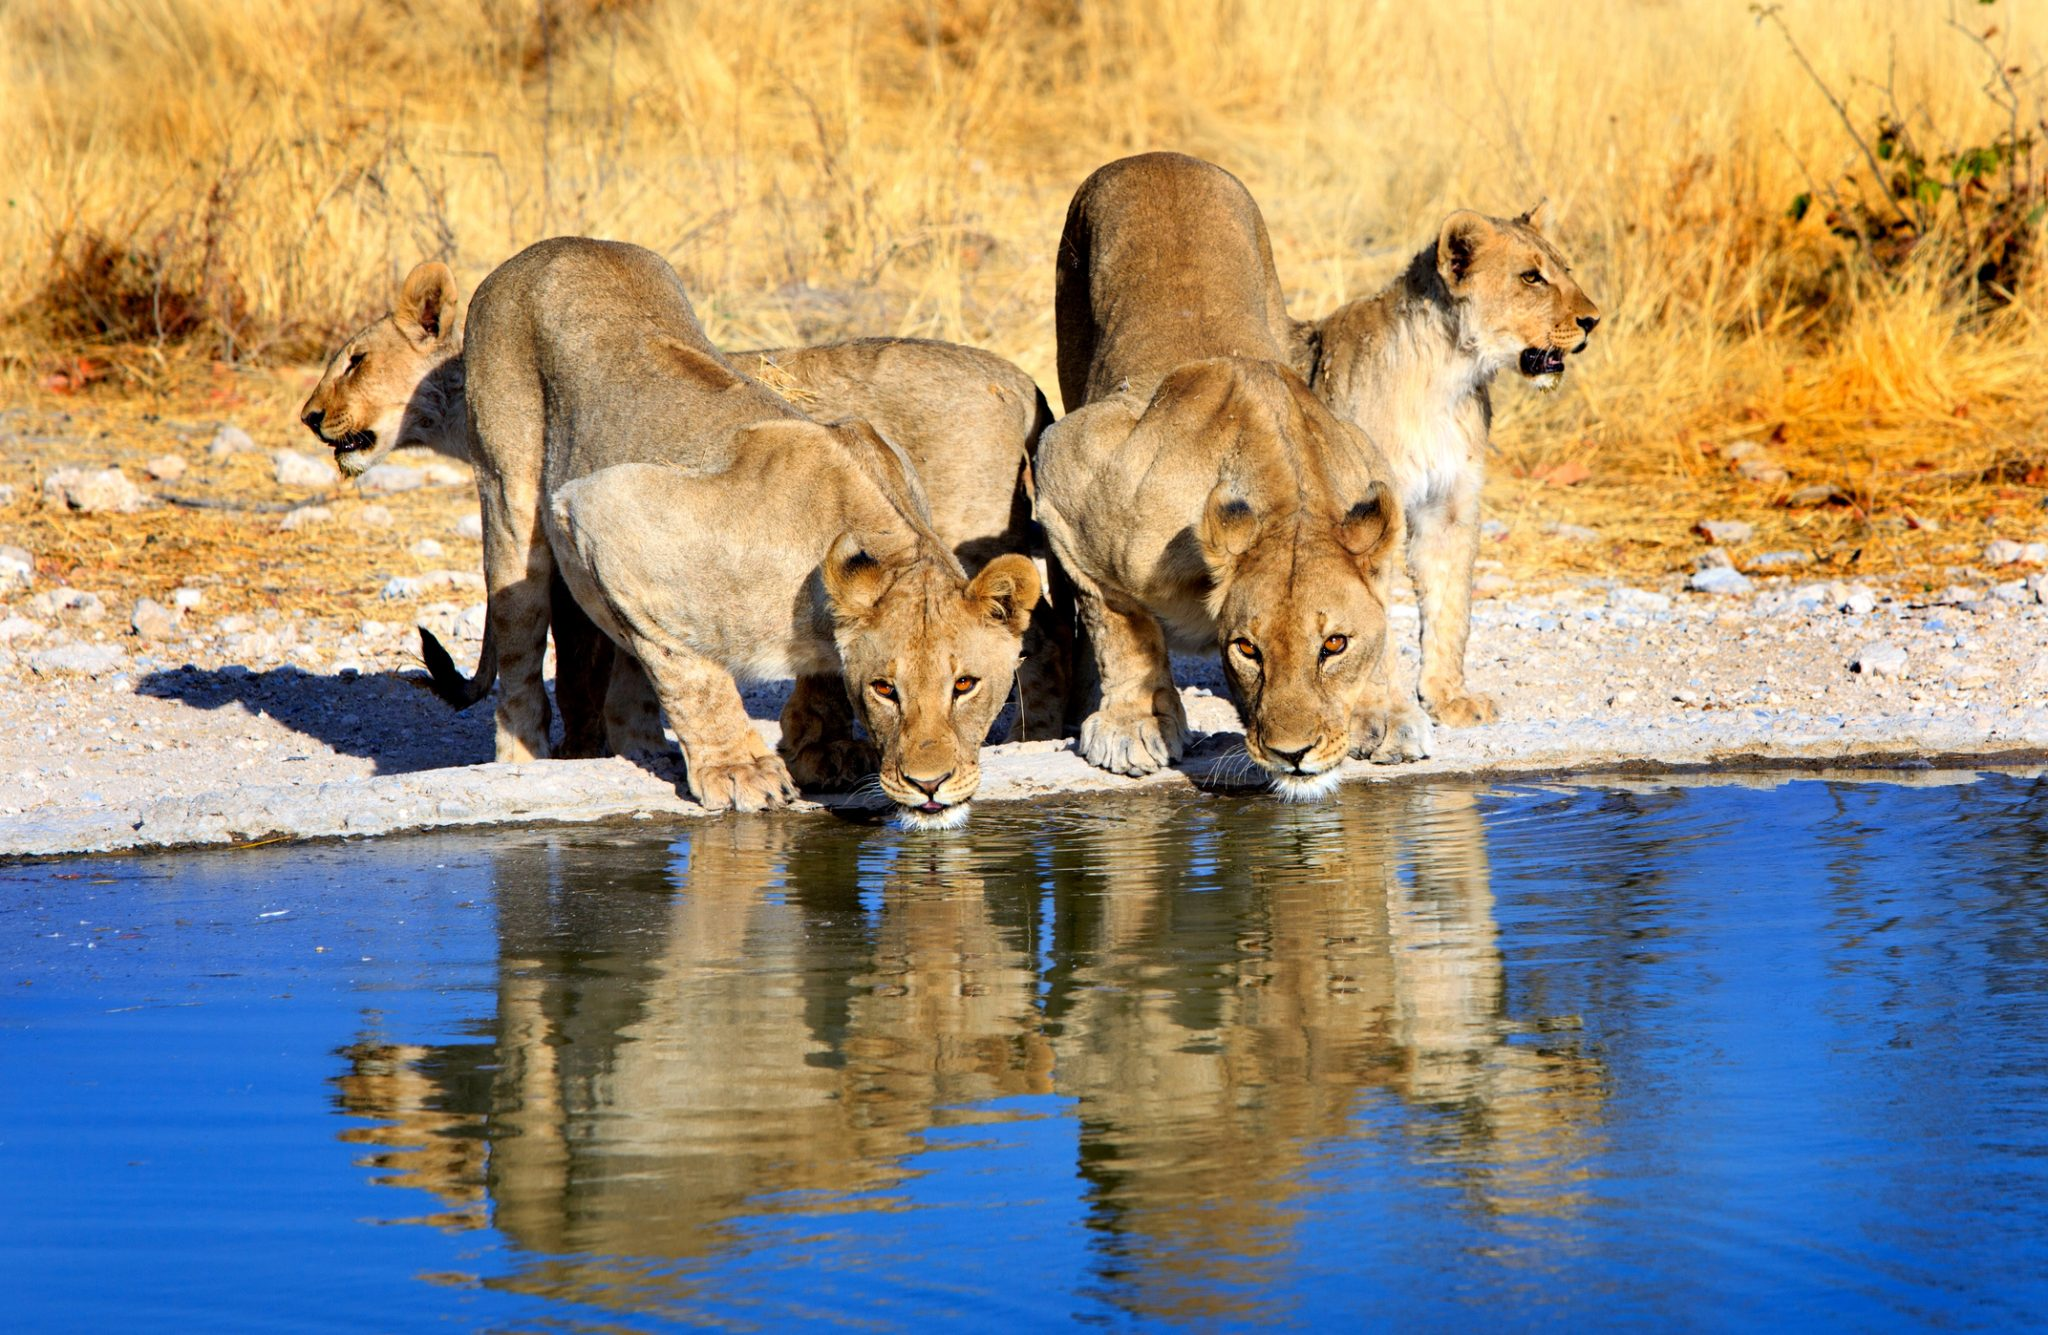 Lions drinking from a waterhole with good reflection